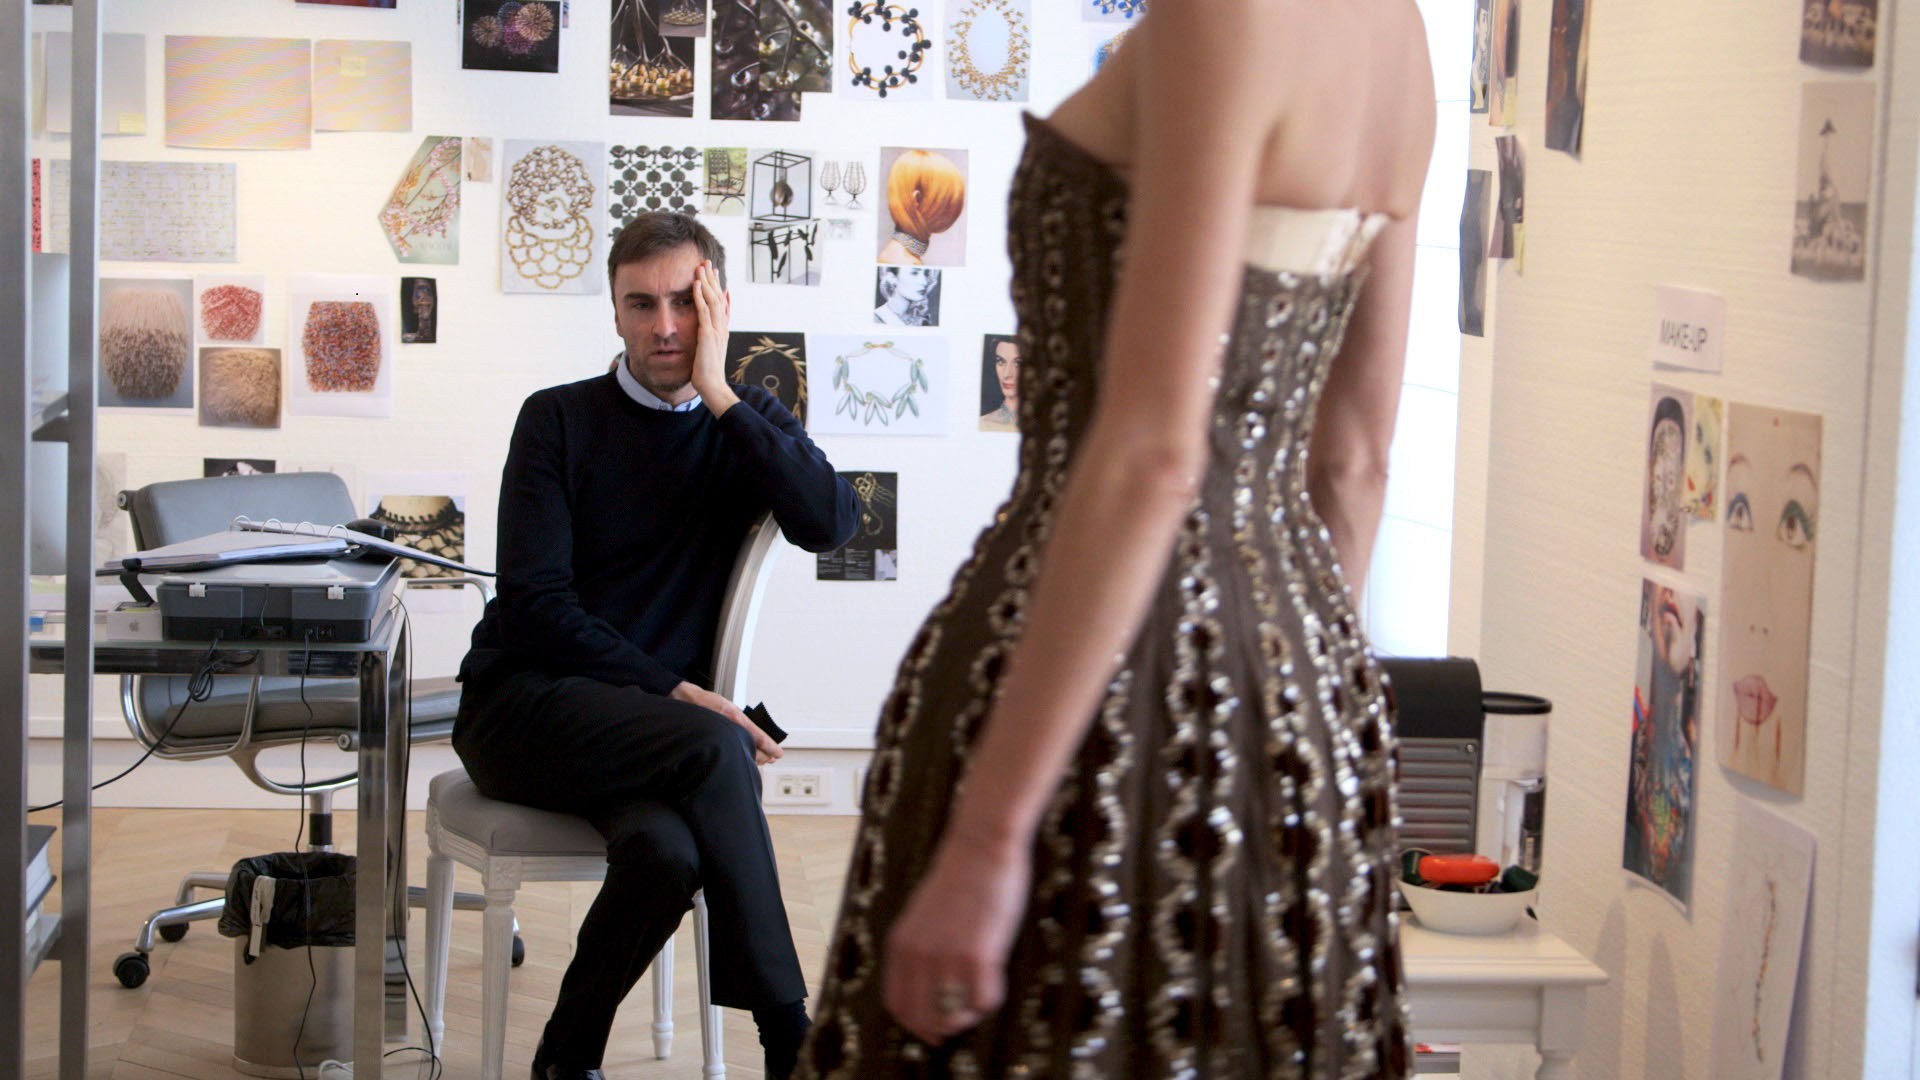 asvof-2015-01-08-dior_et_moi_directed_by_frederic_tcheng_-_january_27th_at_23h05_on_canal_-diane_pernet-1290974703.jpg